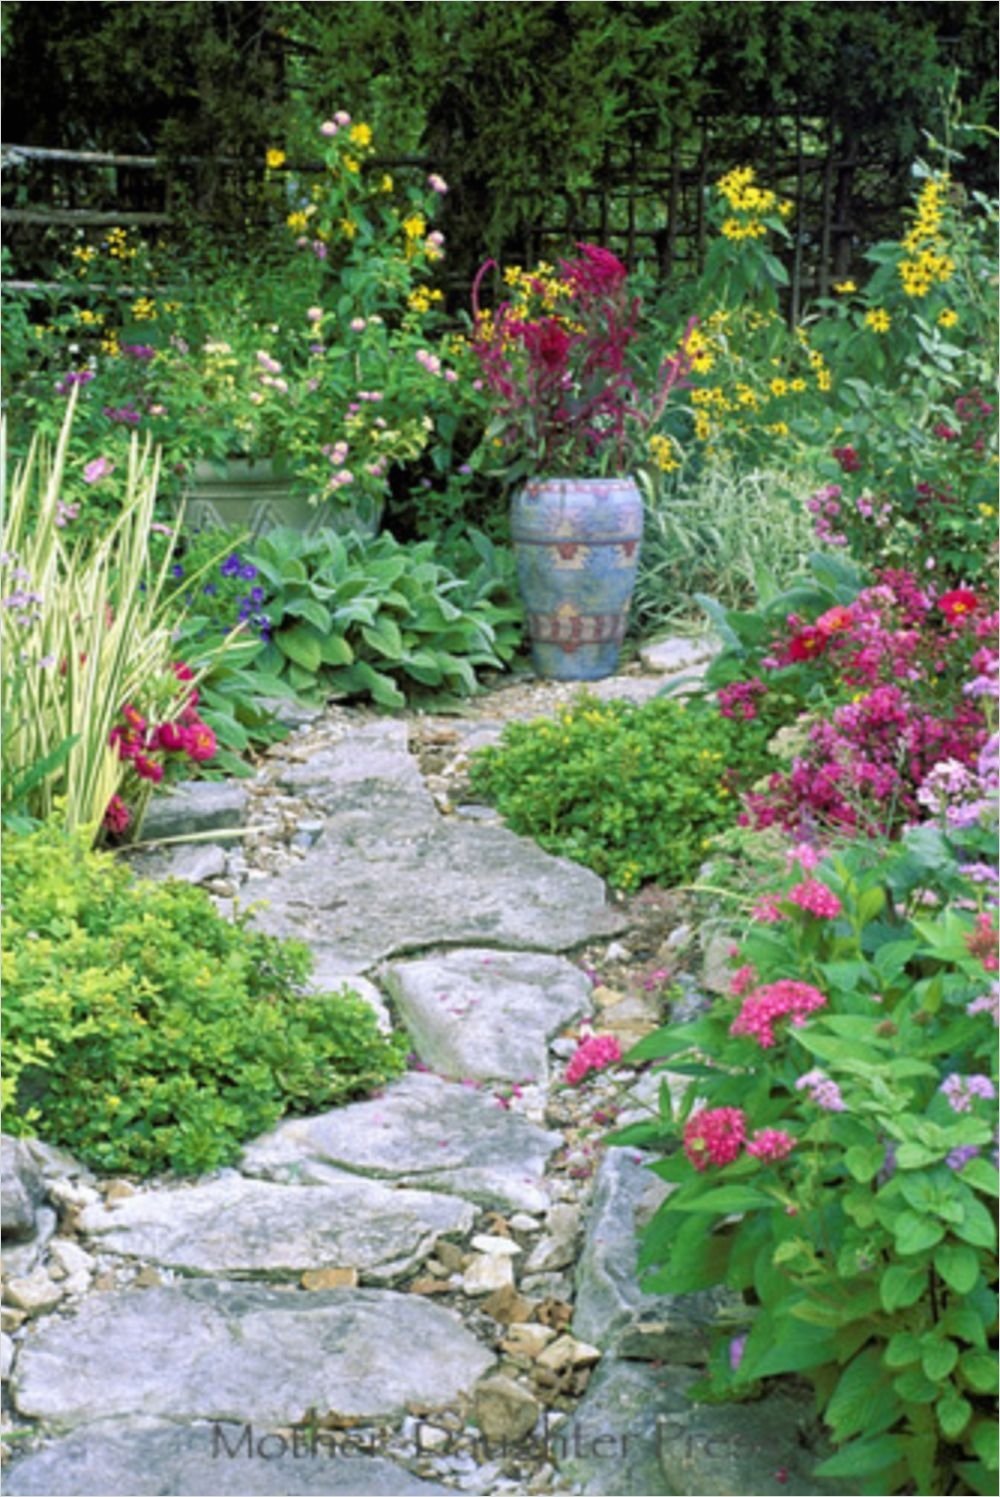 42 Amazing Ideas Country Garden Decor 67 Simple and Beautiful Country Garden Decor Ideas 29 Wartaku 5